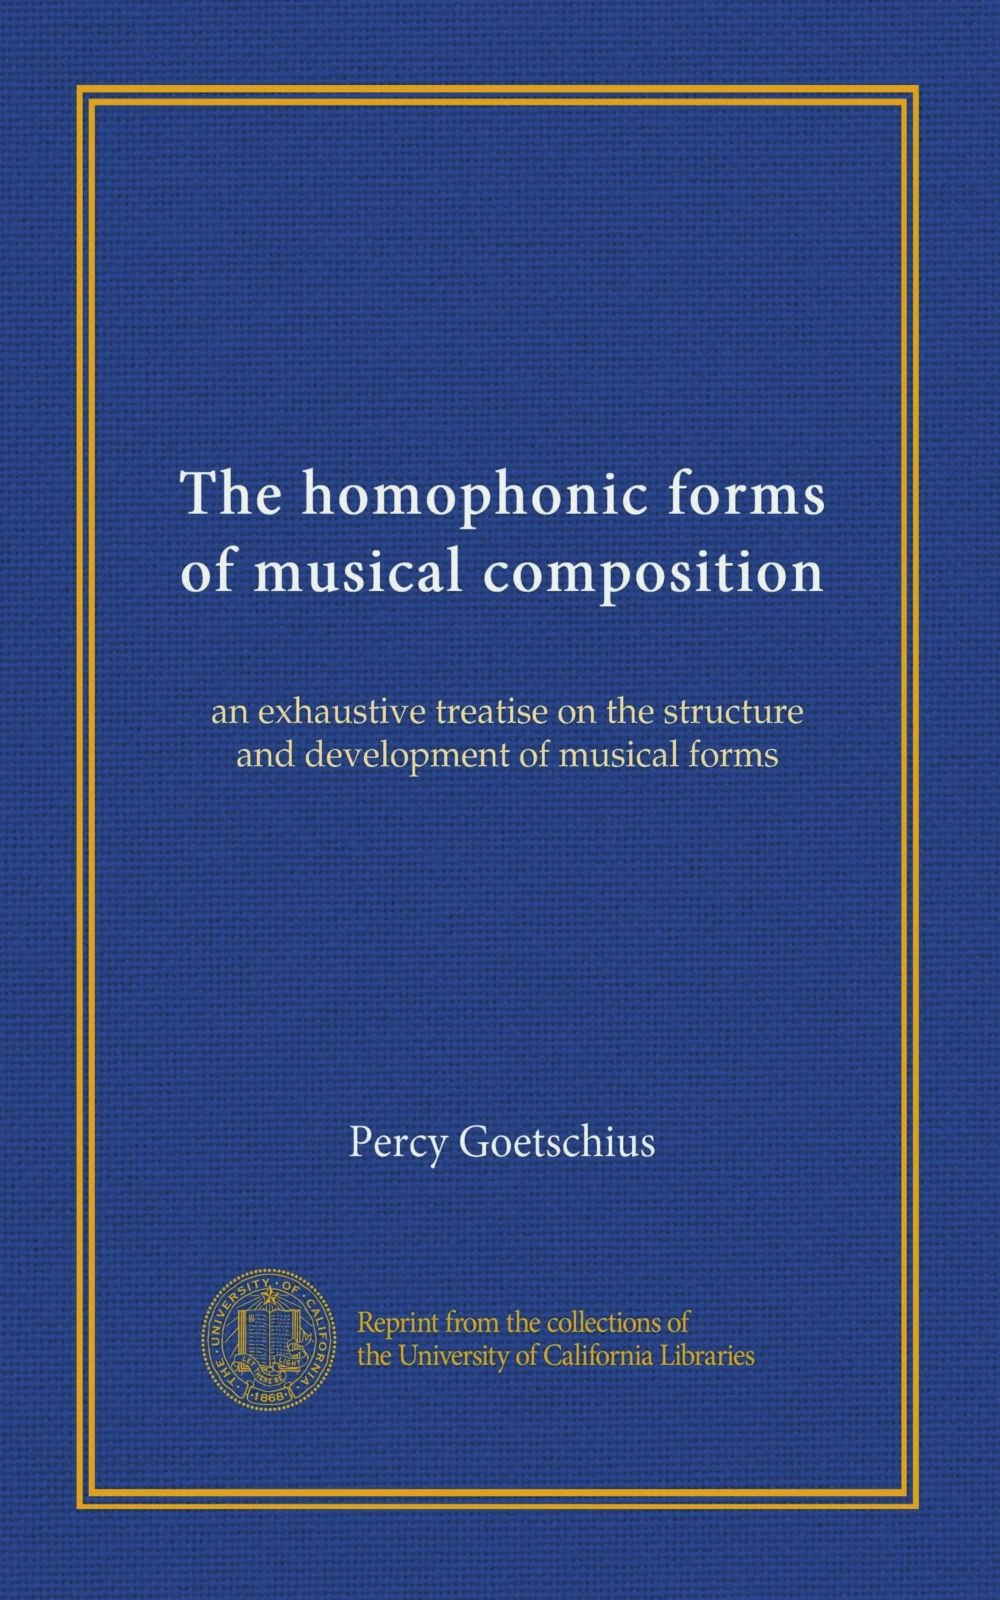 The homophonic forms of musical composition: an exhaustive treatise on the structure and development of musical forms PDF